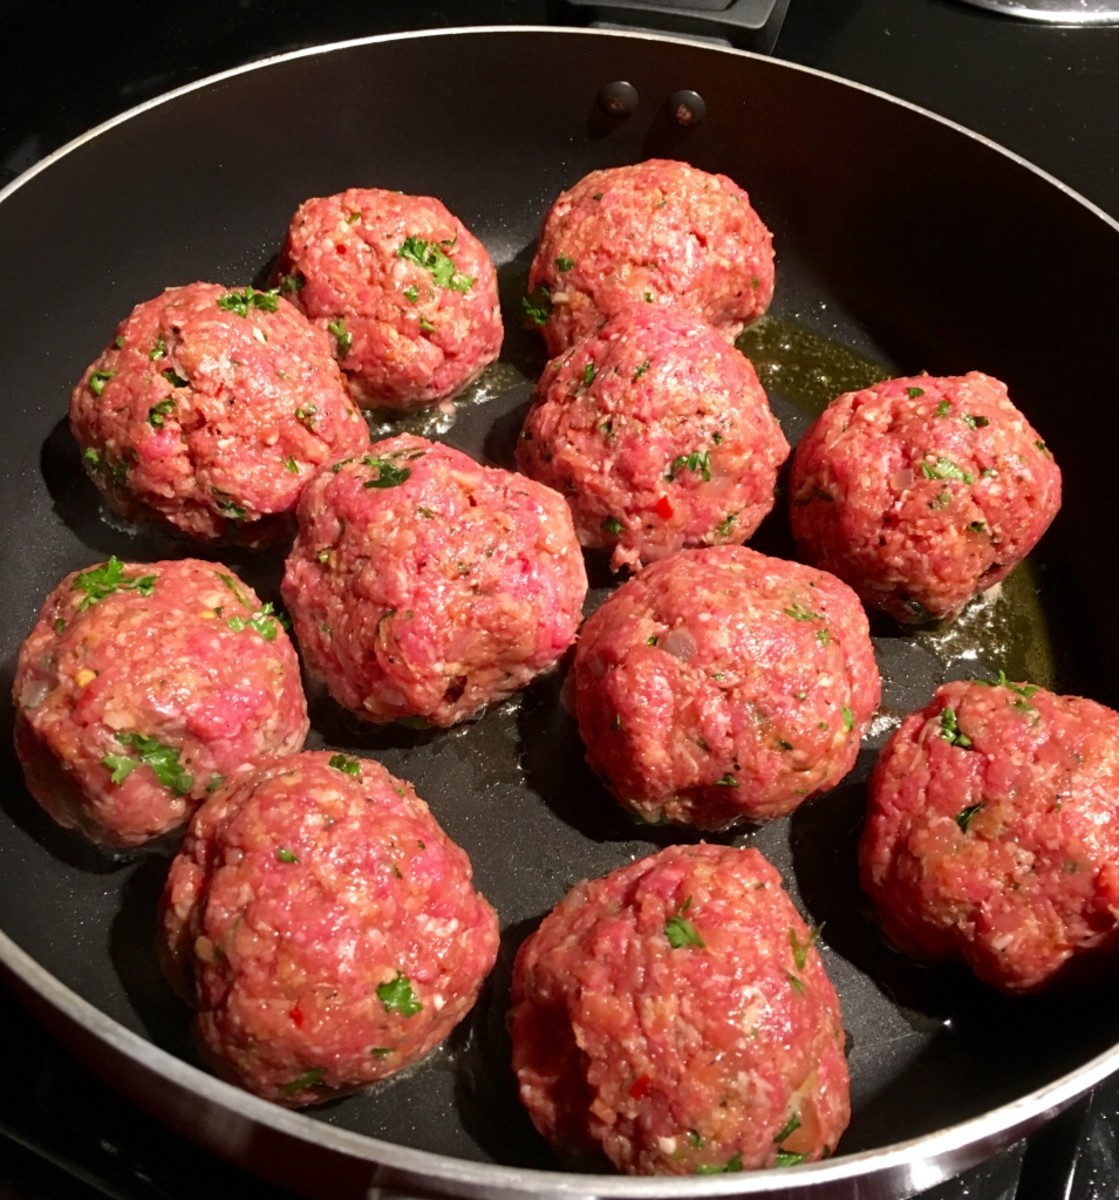 Don't overwork the meatball mixture before cooking